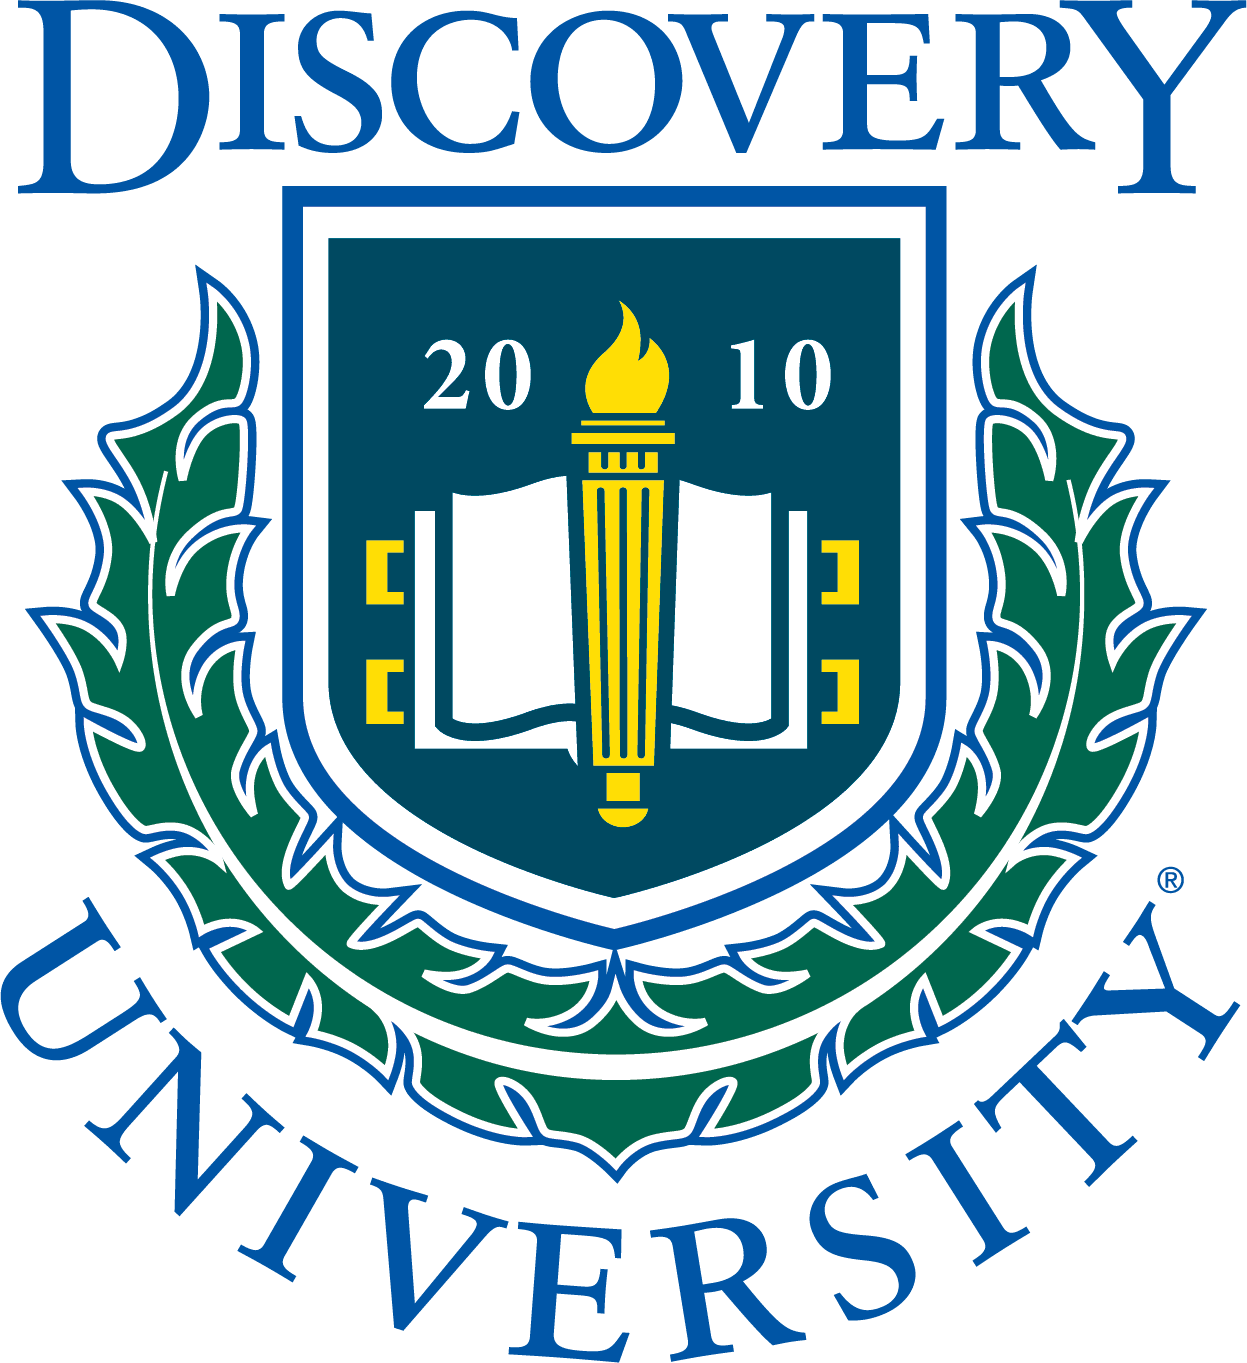 Discovery Senior Living in Bonita Springs, Florida offers Discovery University